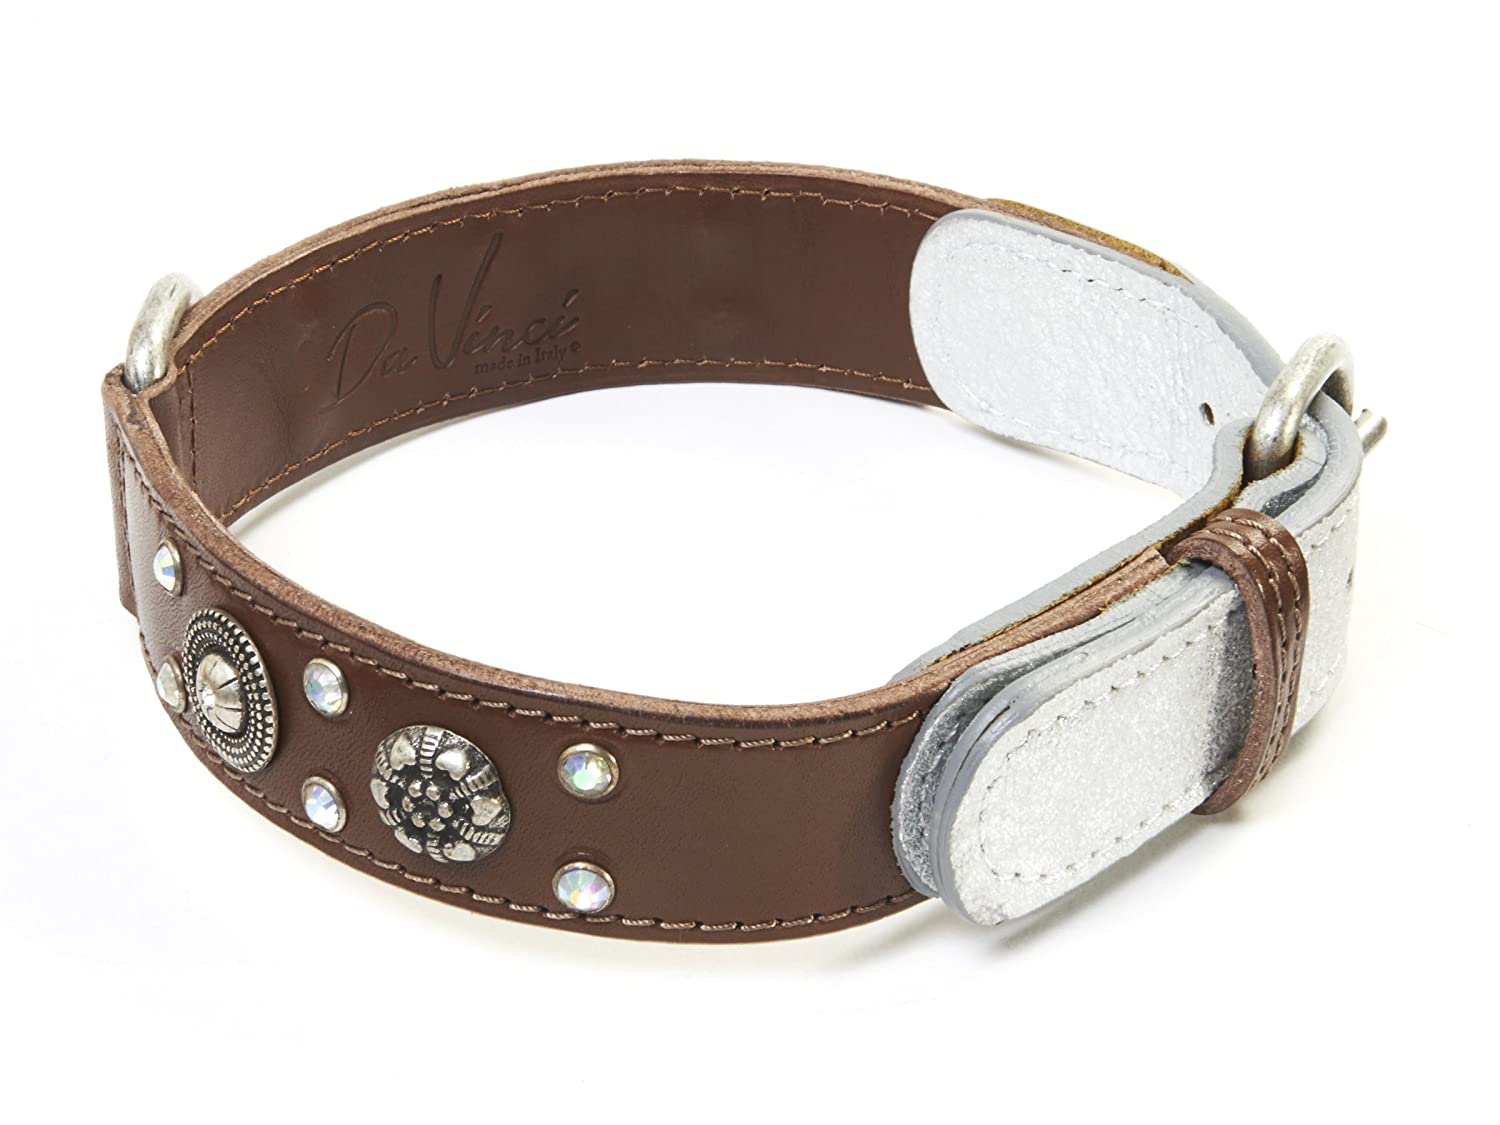 Brown 60 cm Brown 60 cm Da Vinci Ginevra Leather Dog Collar with Studs and Rhinestones, 60 cm, Brown